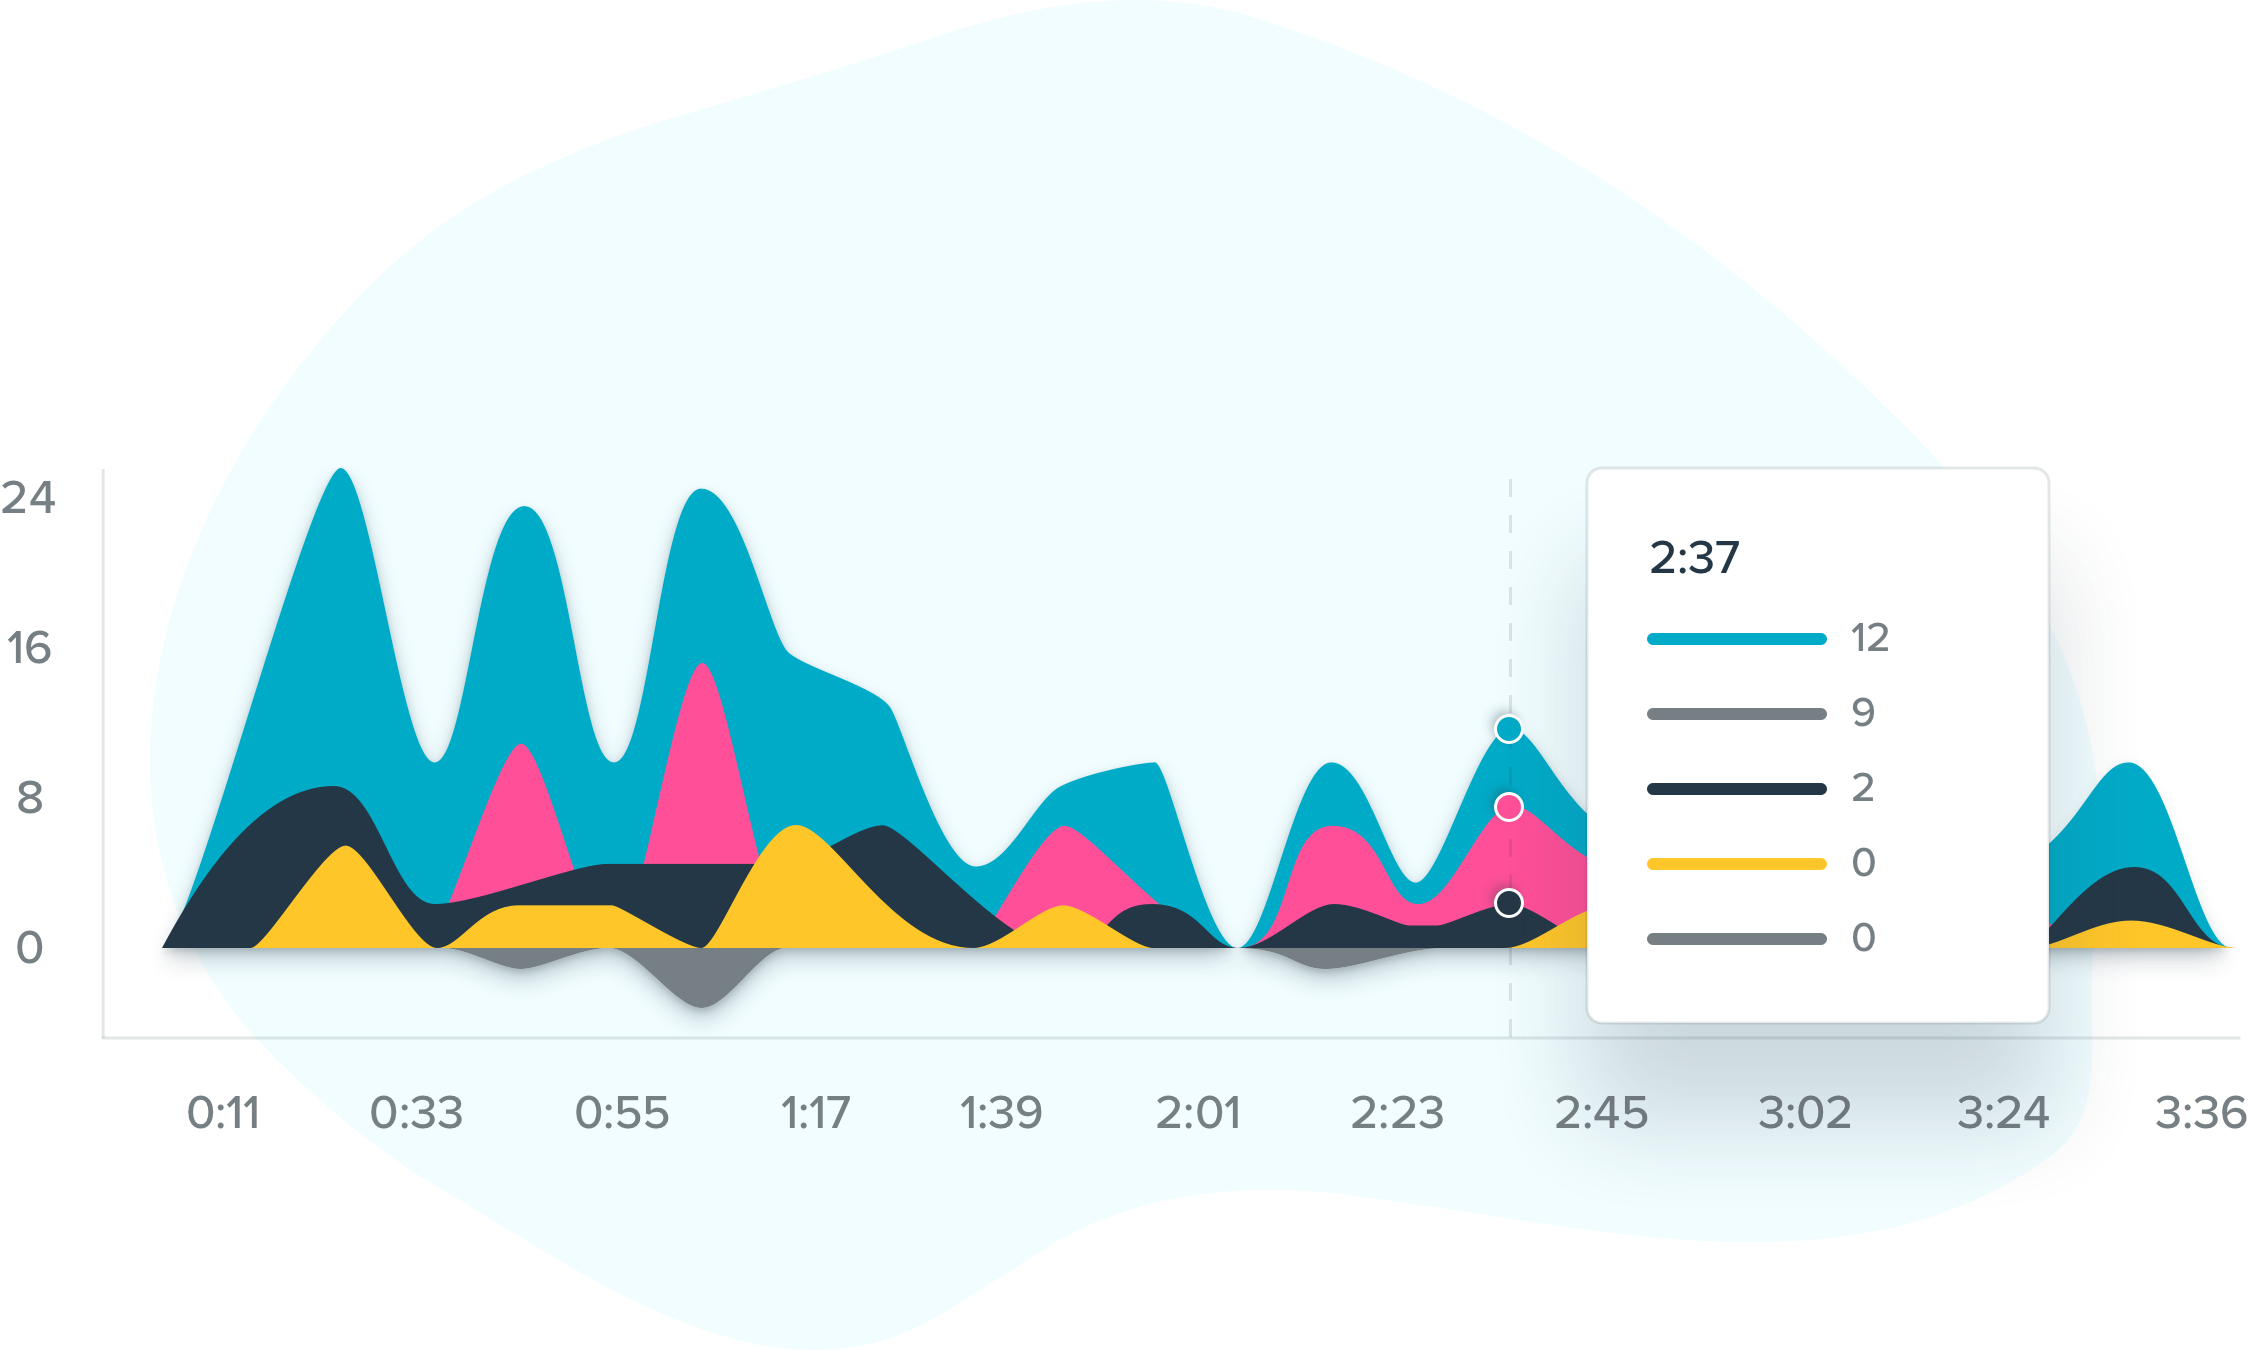 Mockup of the engagement line chart in onQ's analytics.